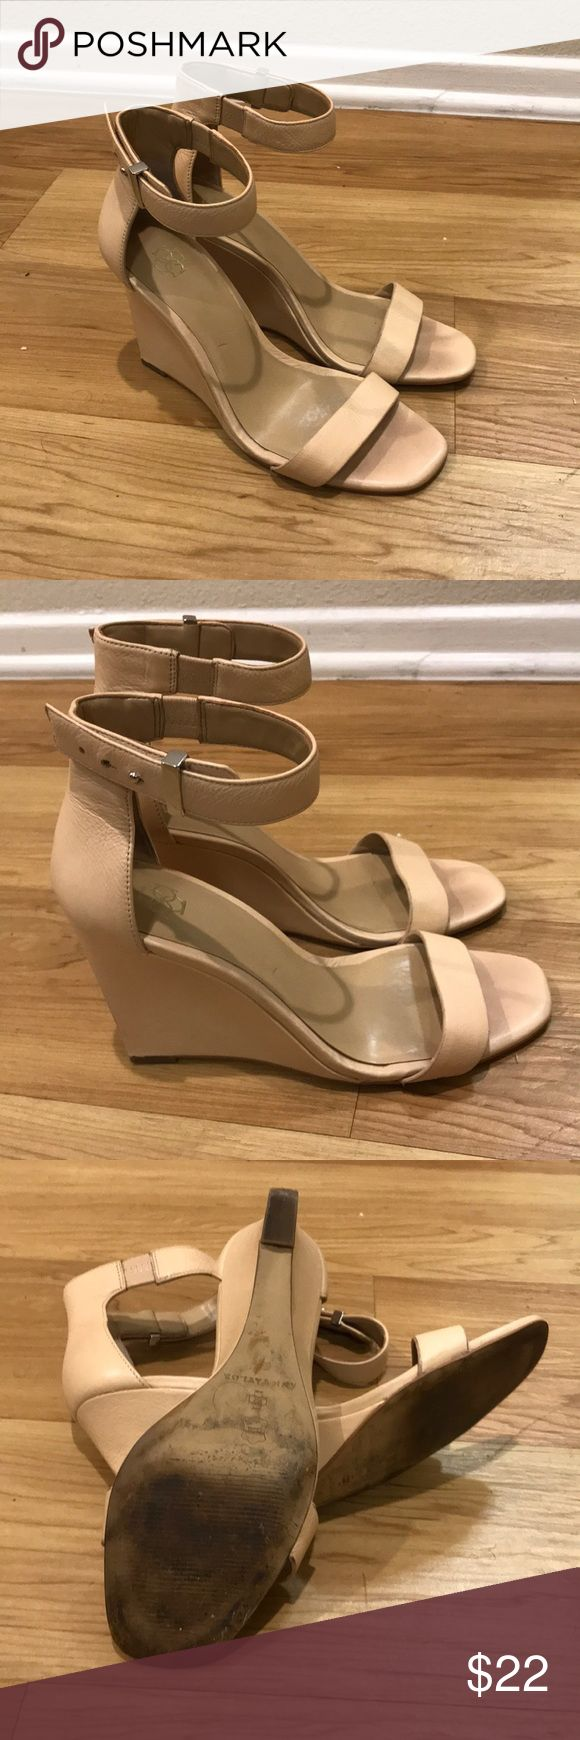 "Light tan wedge sandal by Ann Taylor Beige leather wedge sandals size 6.5 with a 4"" heel. Can be dressed up or down. Ann Taylor Shoes Wedges"